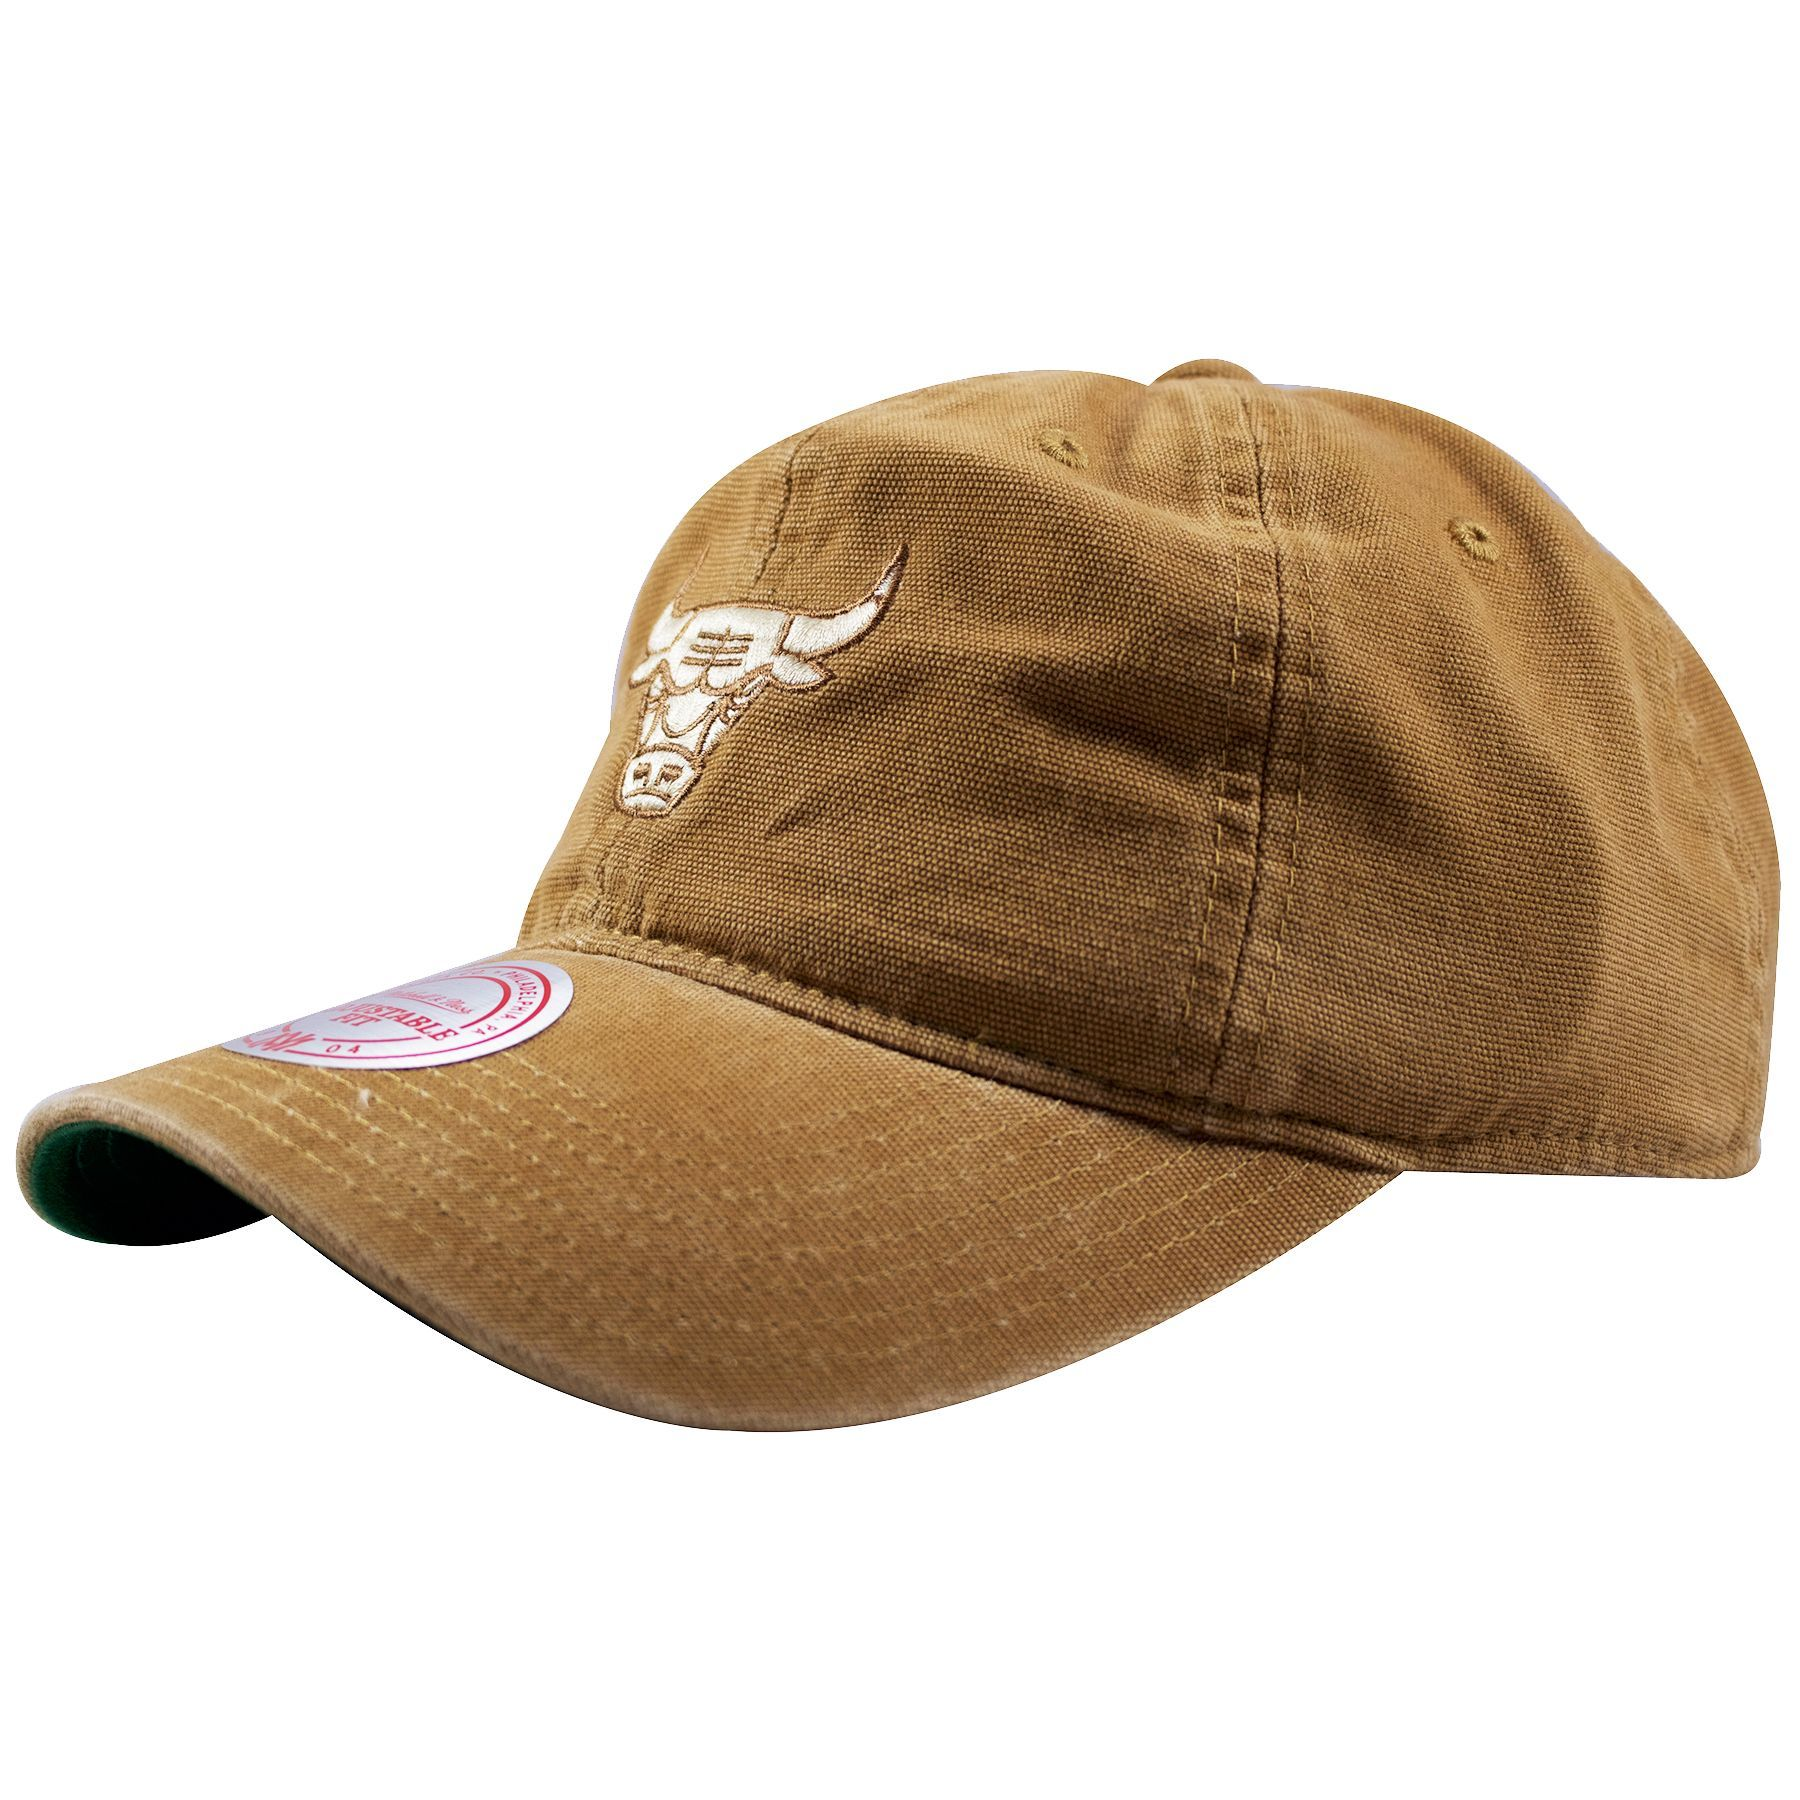 6eaf3d0adcecf Who s tryna cop this Timberland boot matching carhartt inspired tan Bulls dad  hat   chicagobulls  chicago  bulls  chicity  nba  dadhat  tan  ballcap ...